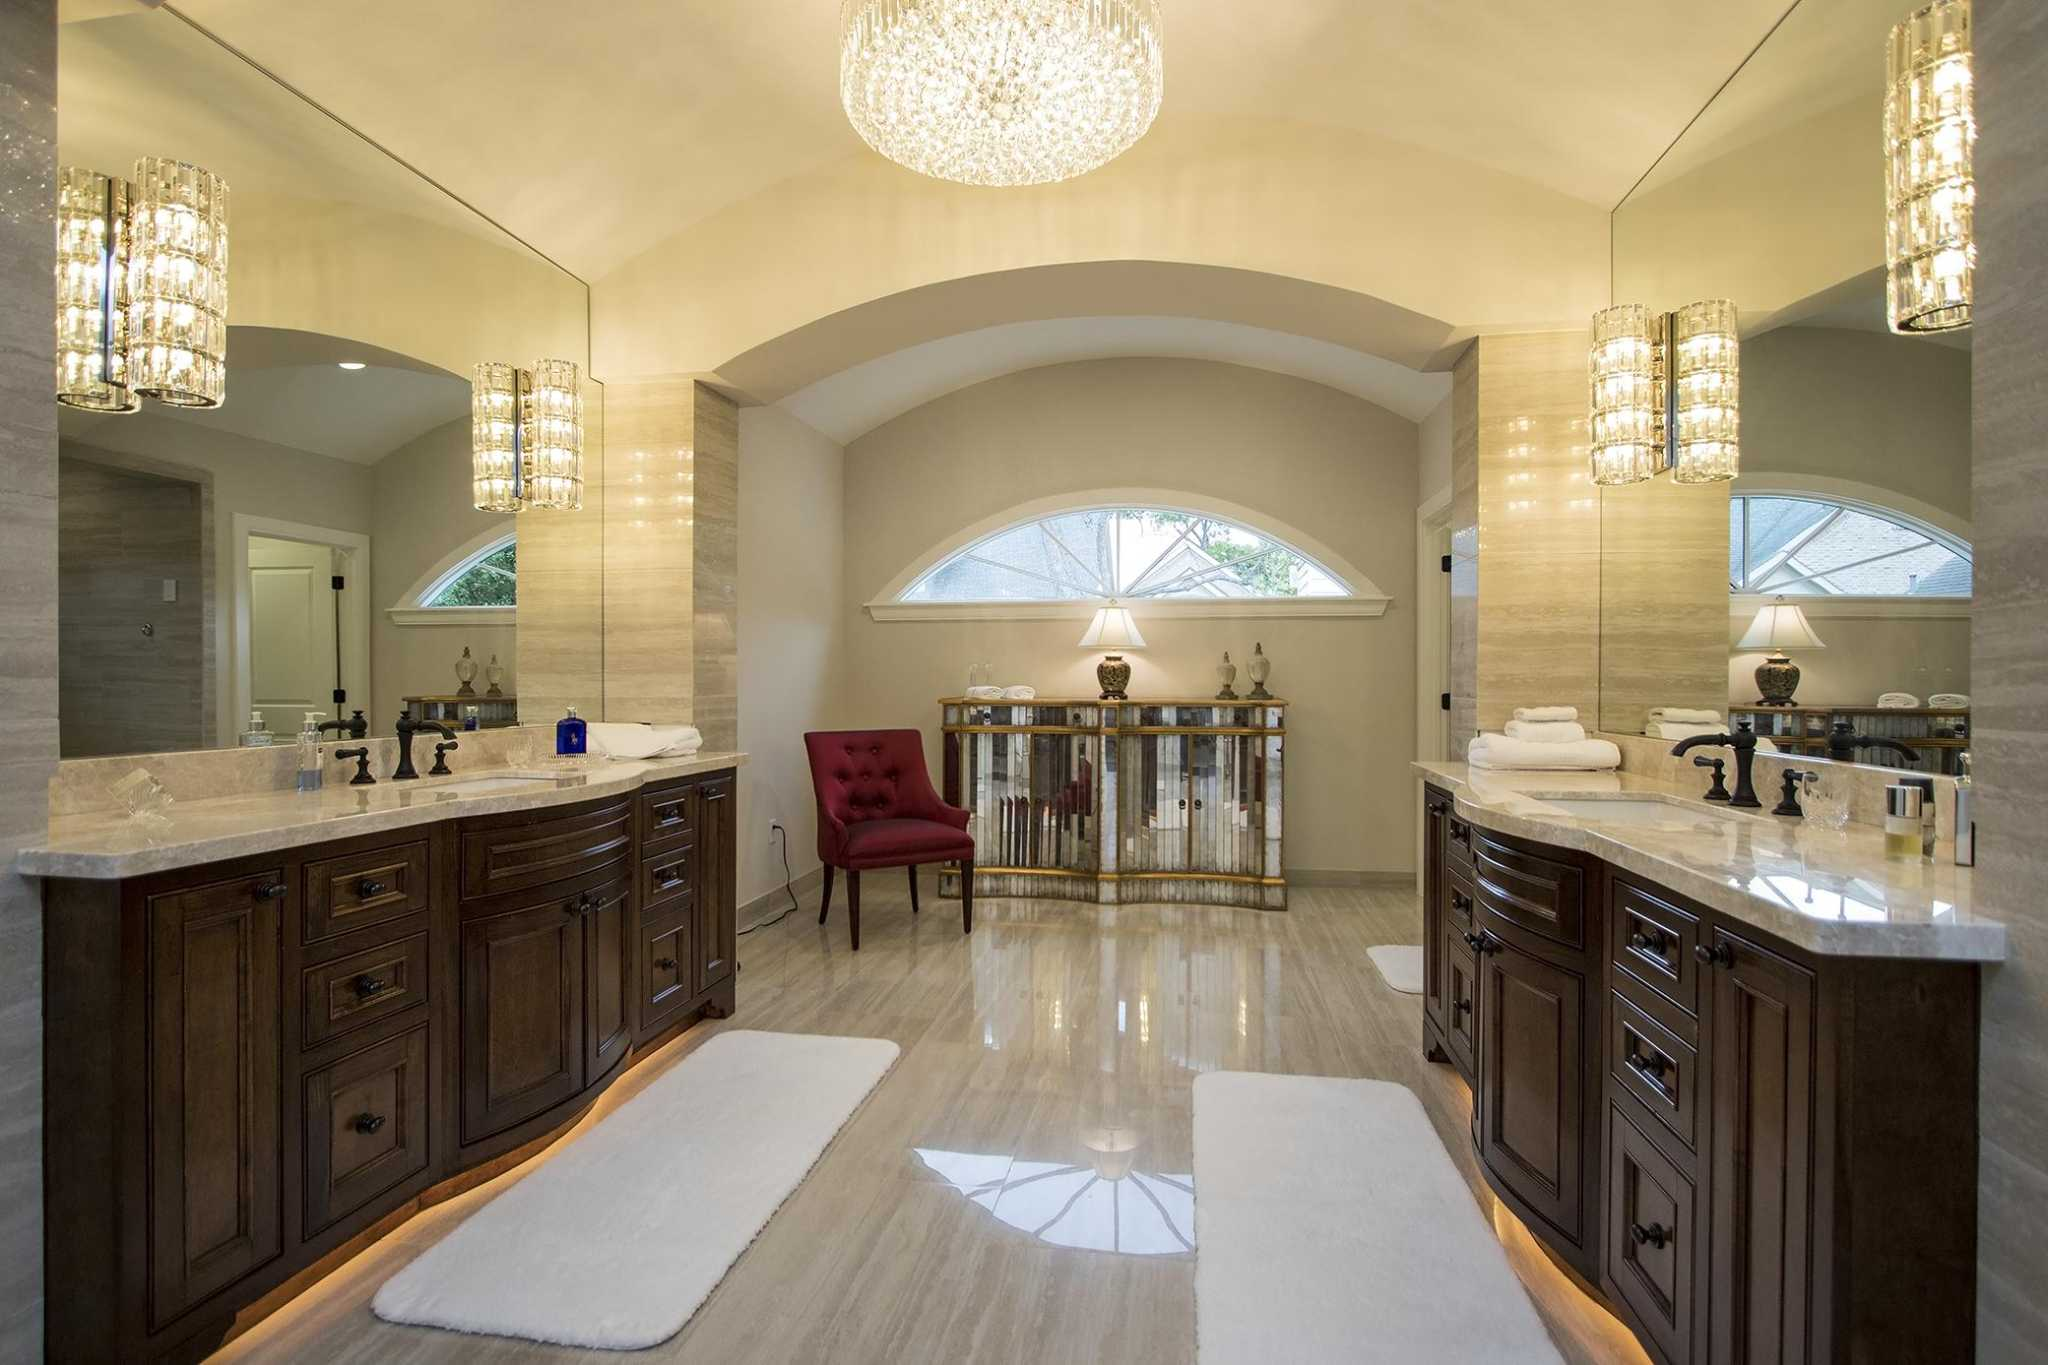 GHBA Remodelers Council: Should you remodel or just move?